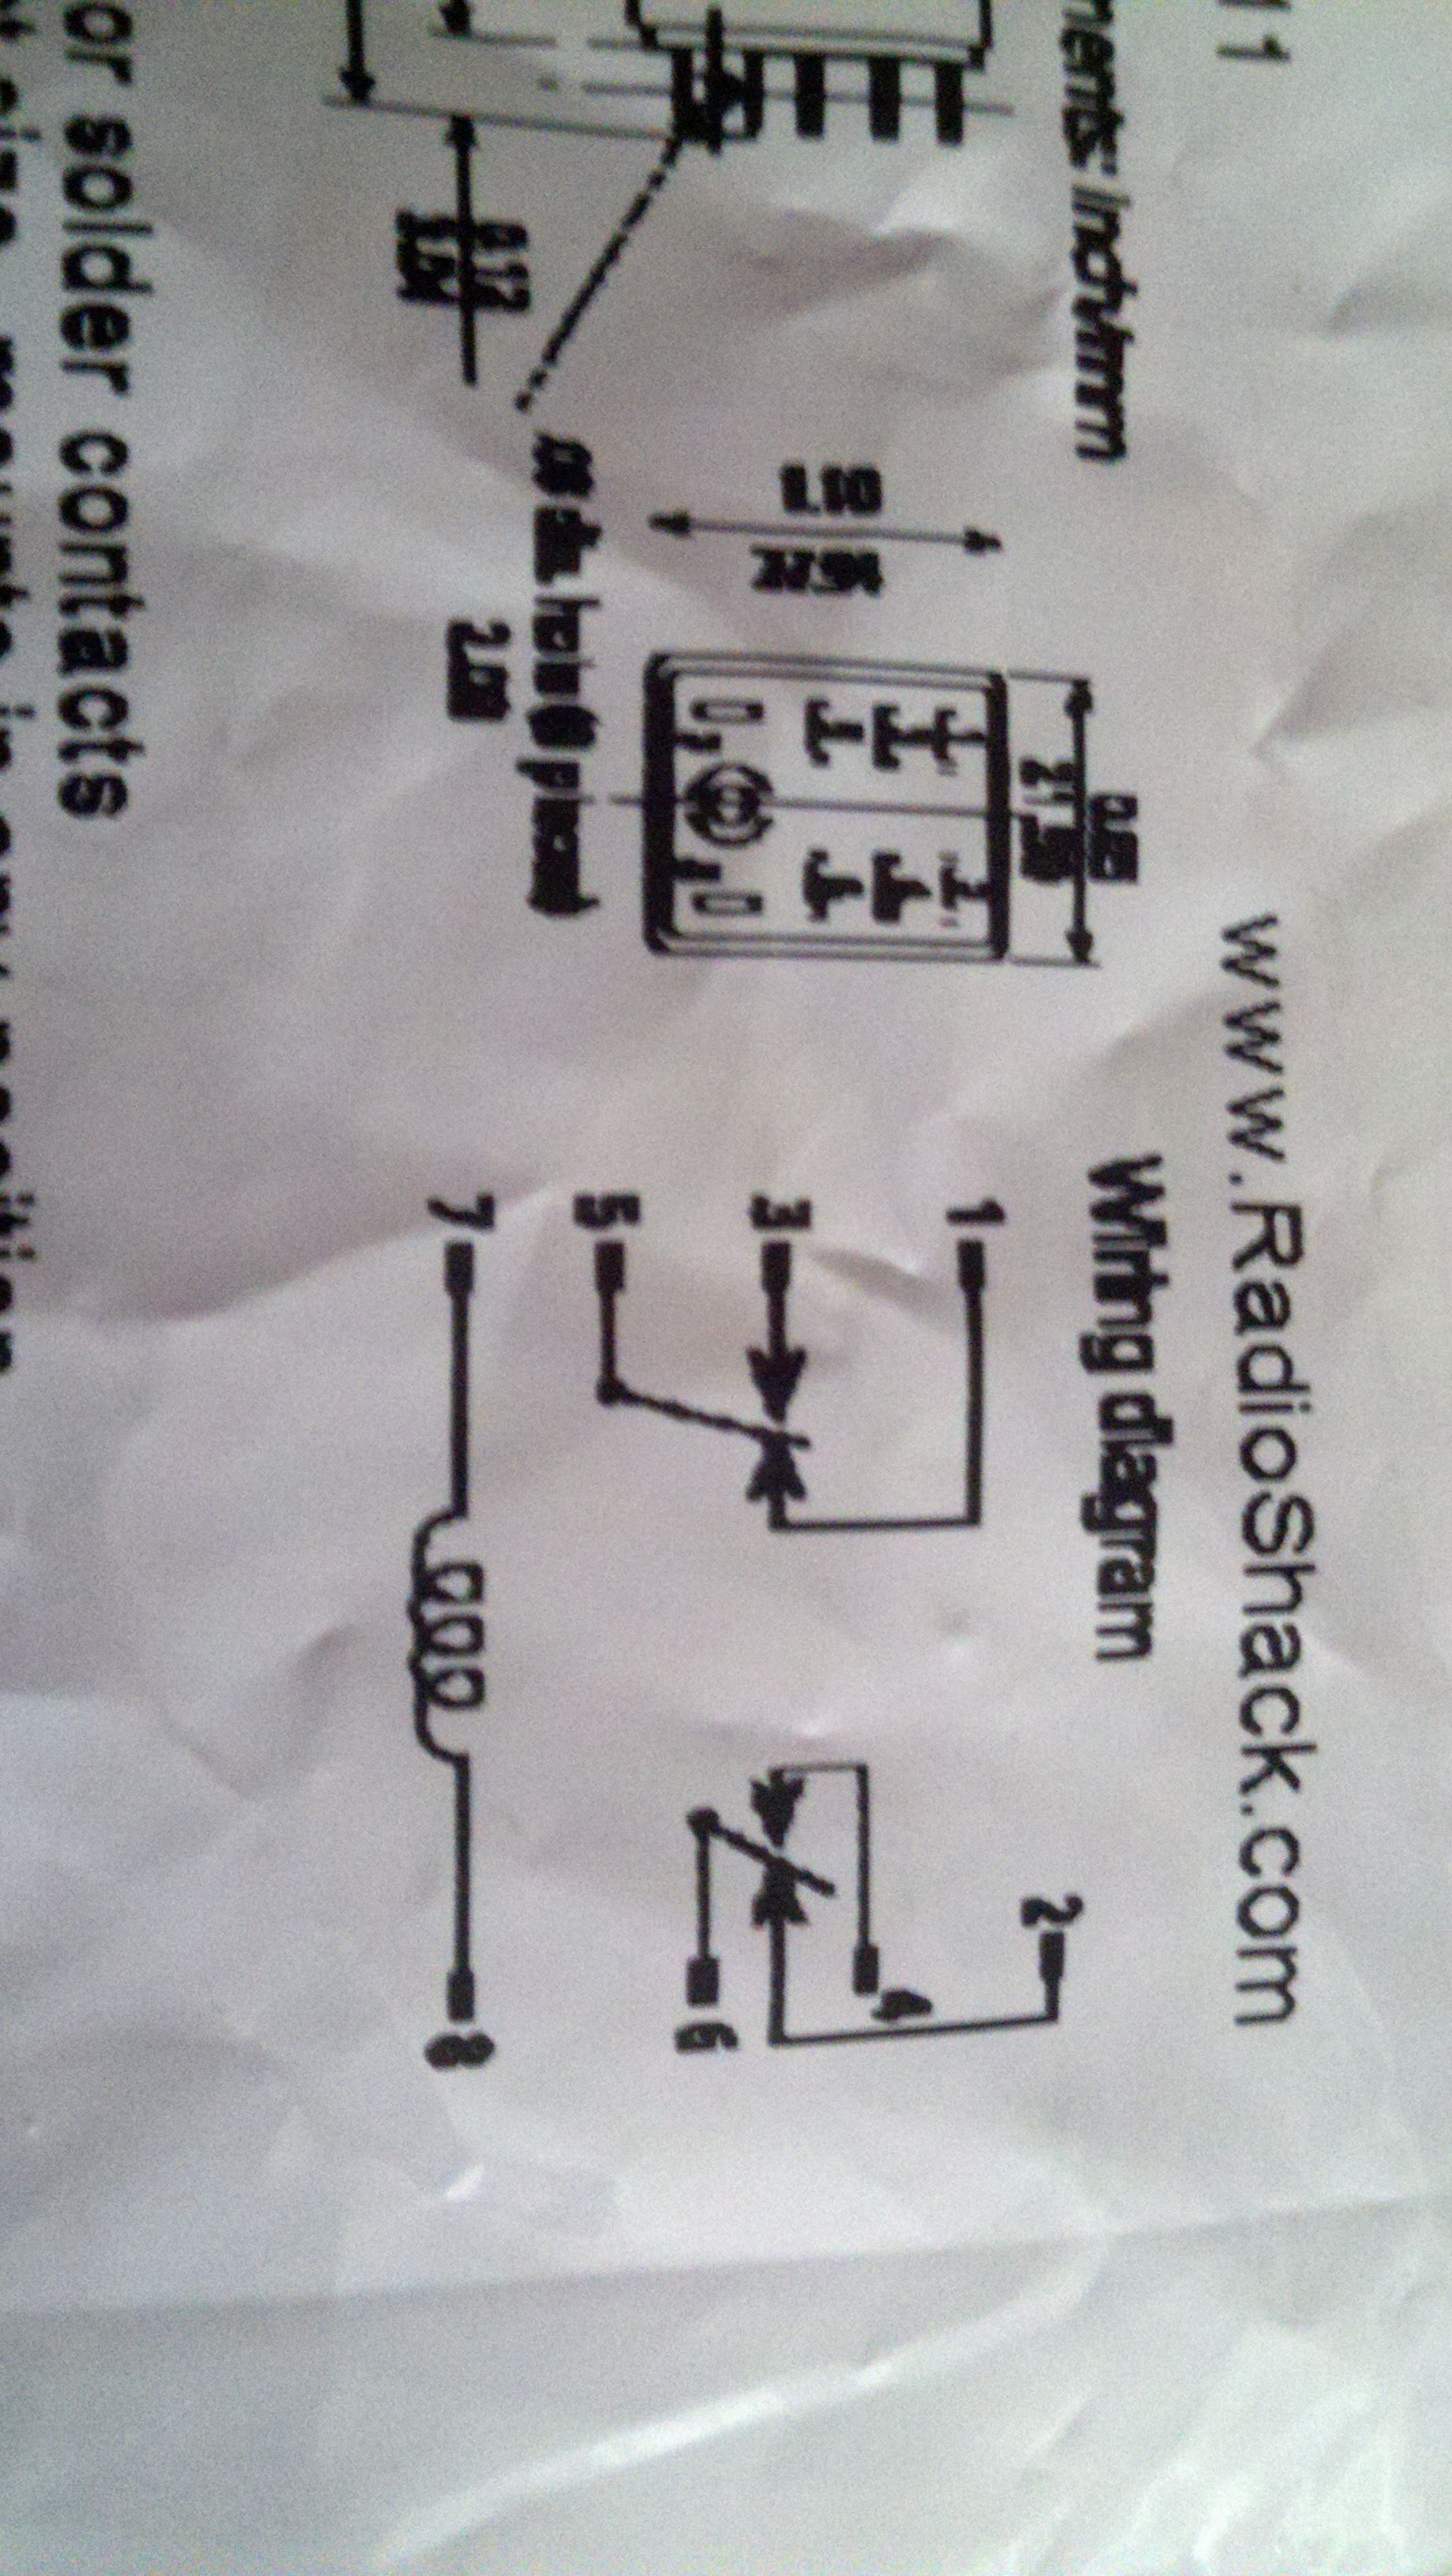 Pin Ice Cube Relay Wiring Diagram On 8 also 37019 LED DRL   Turn Signal Mod also  on 37019 led drl turn signal mod